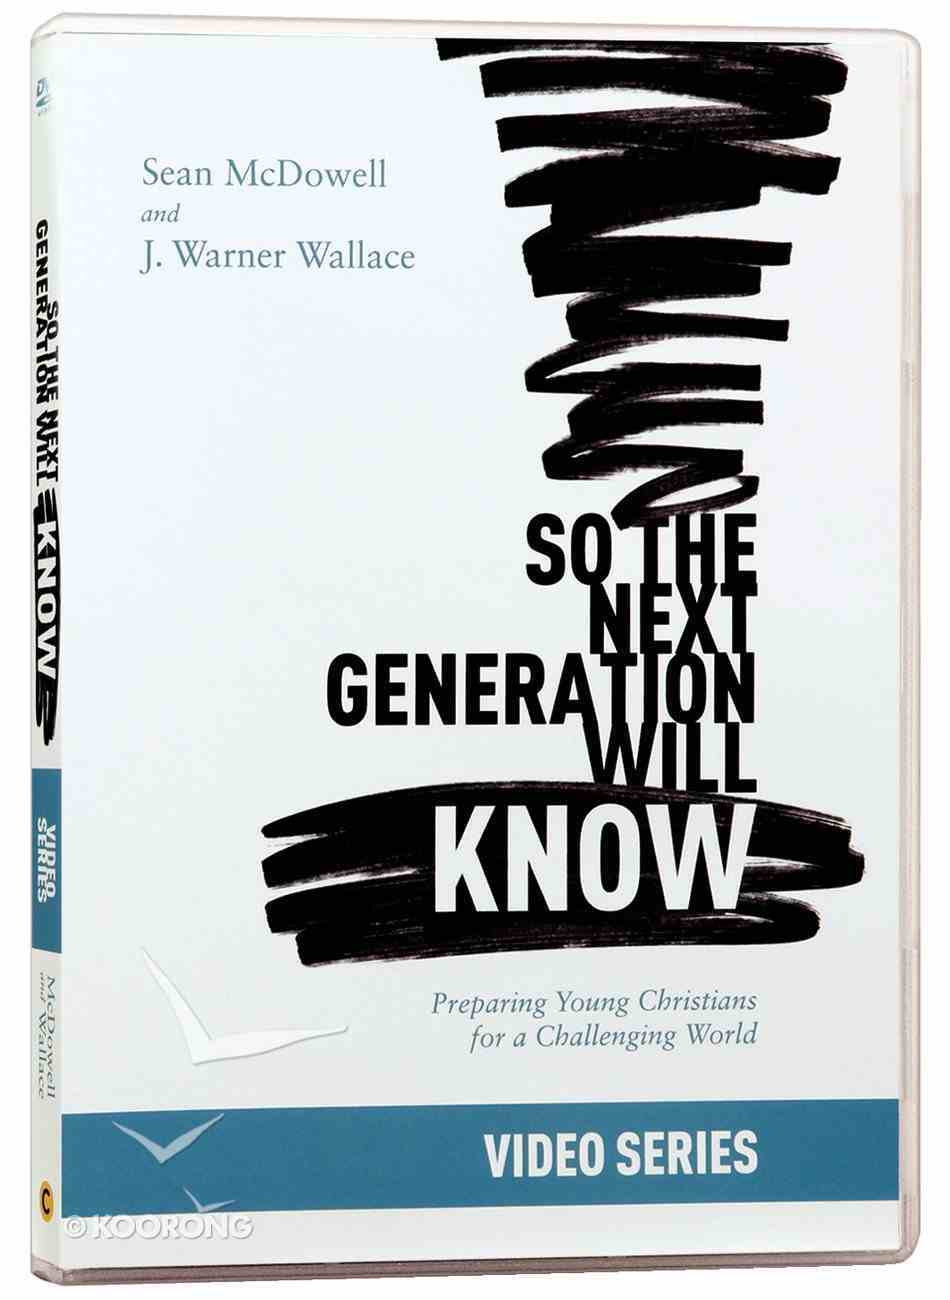 So the Next Generation Will Know: Training Young Christians in a Challenging World (Video Series) DVD